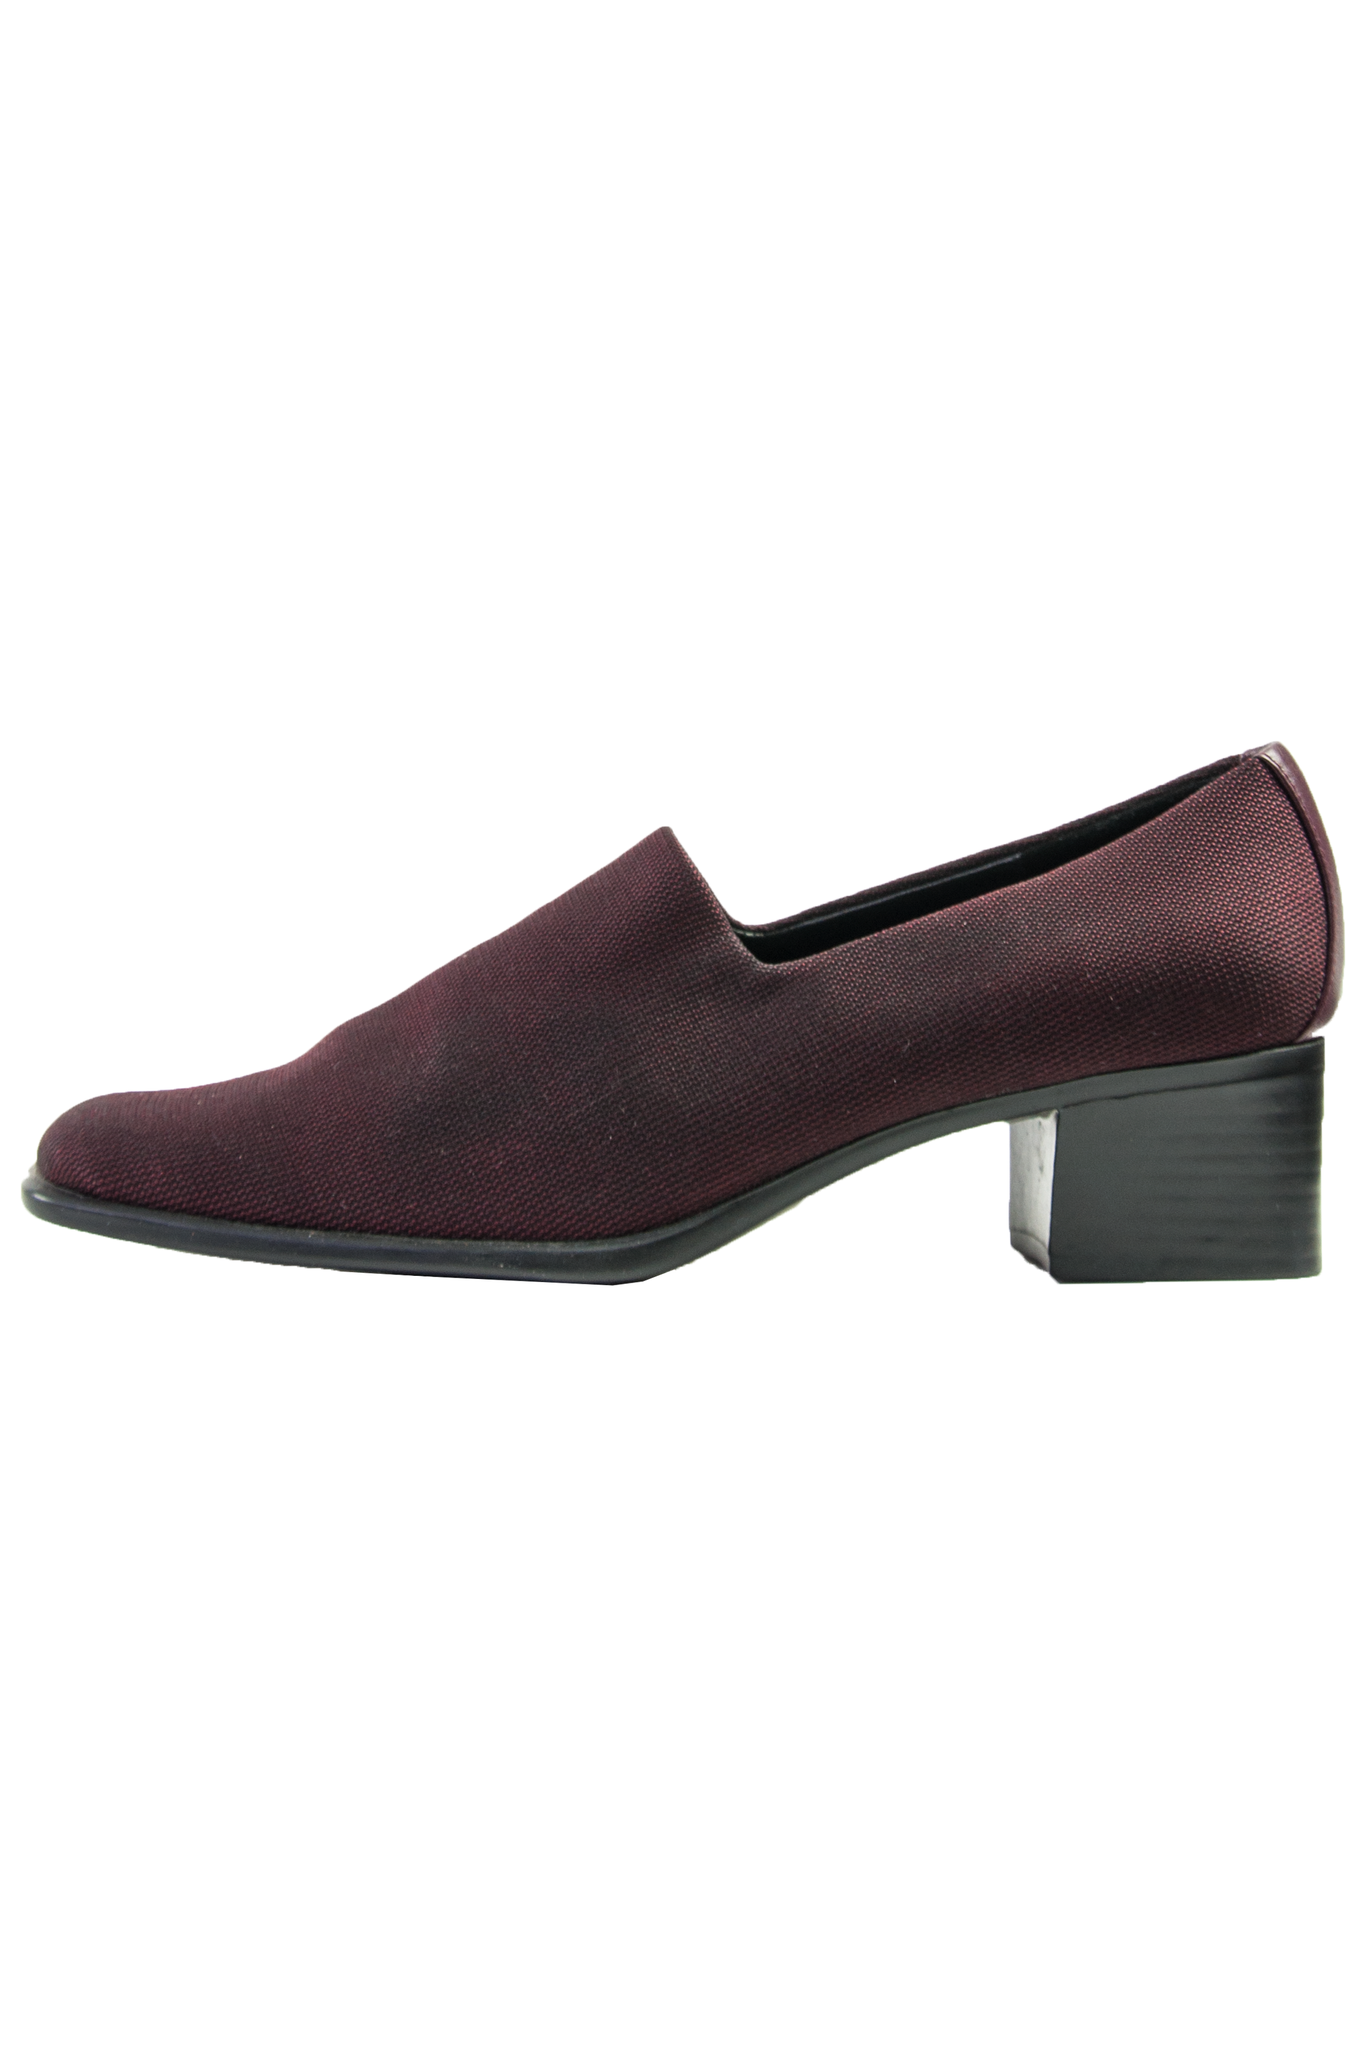 Vintage maroon pumps with black wood heel